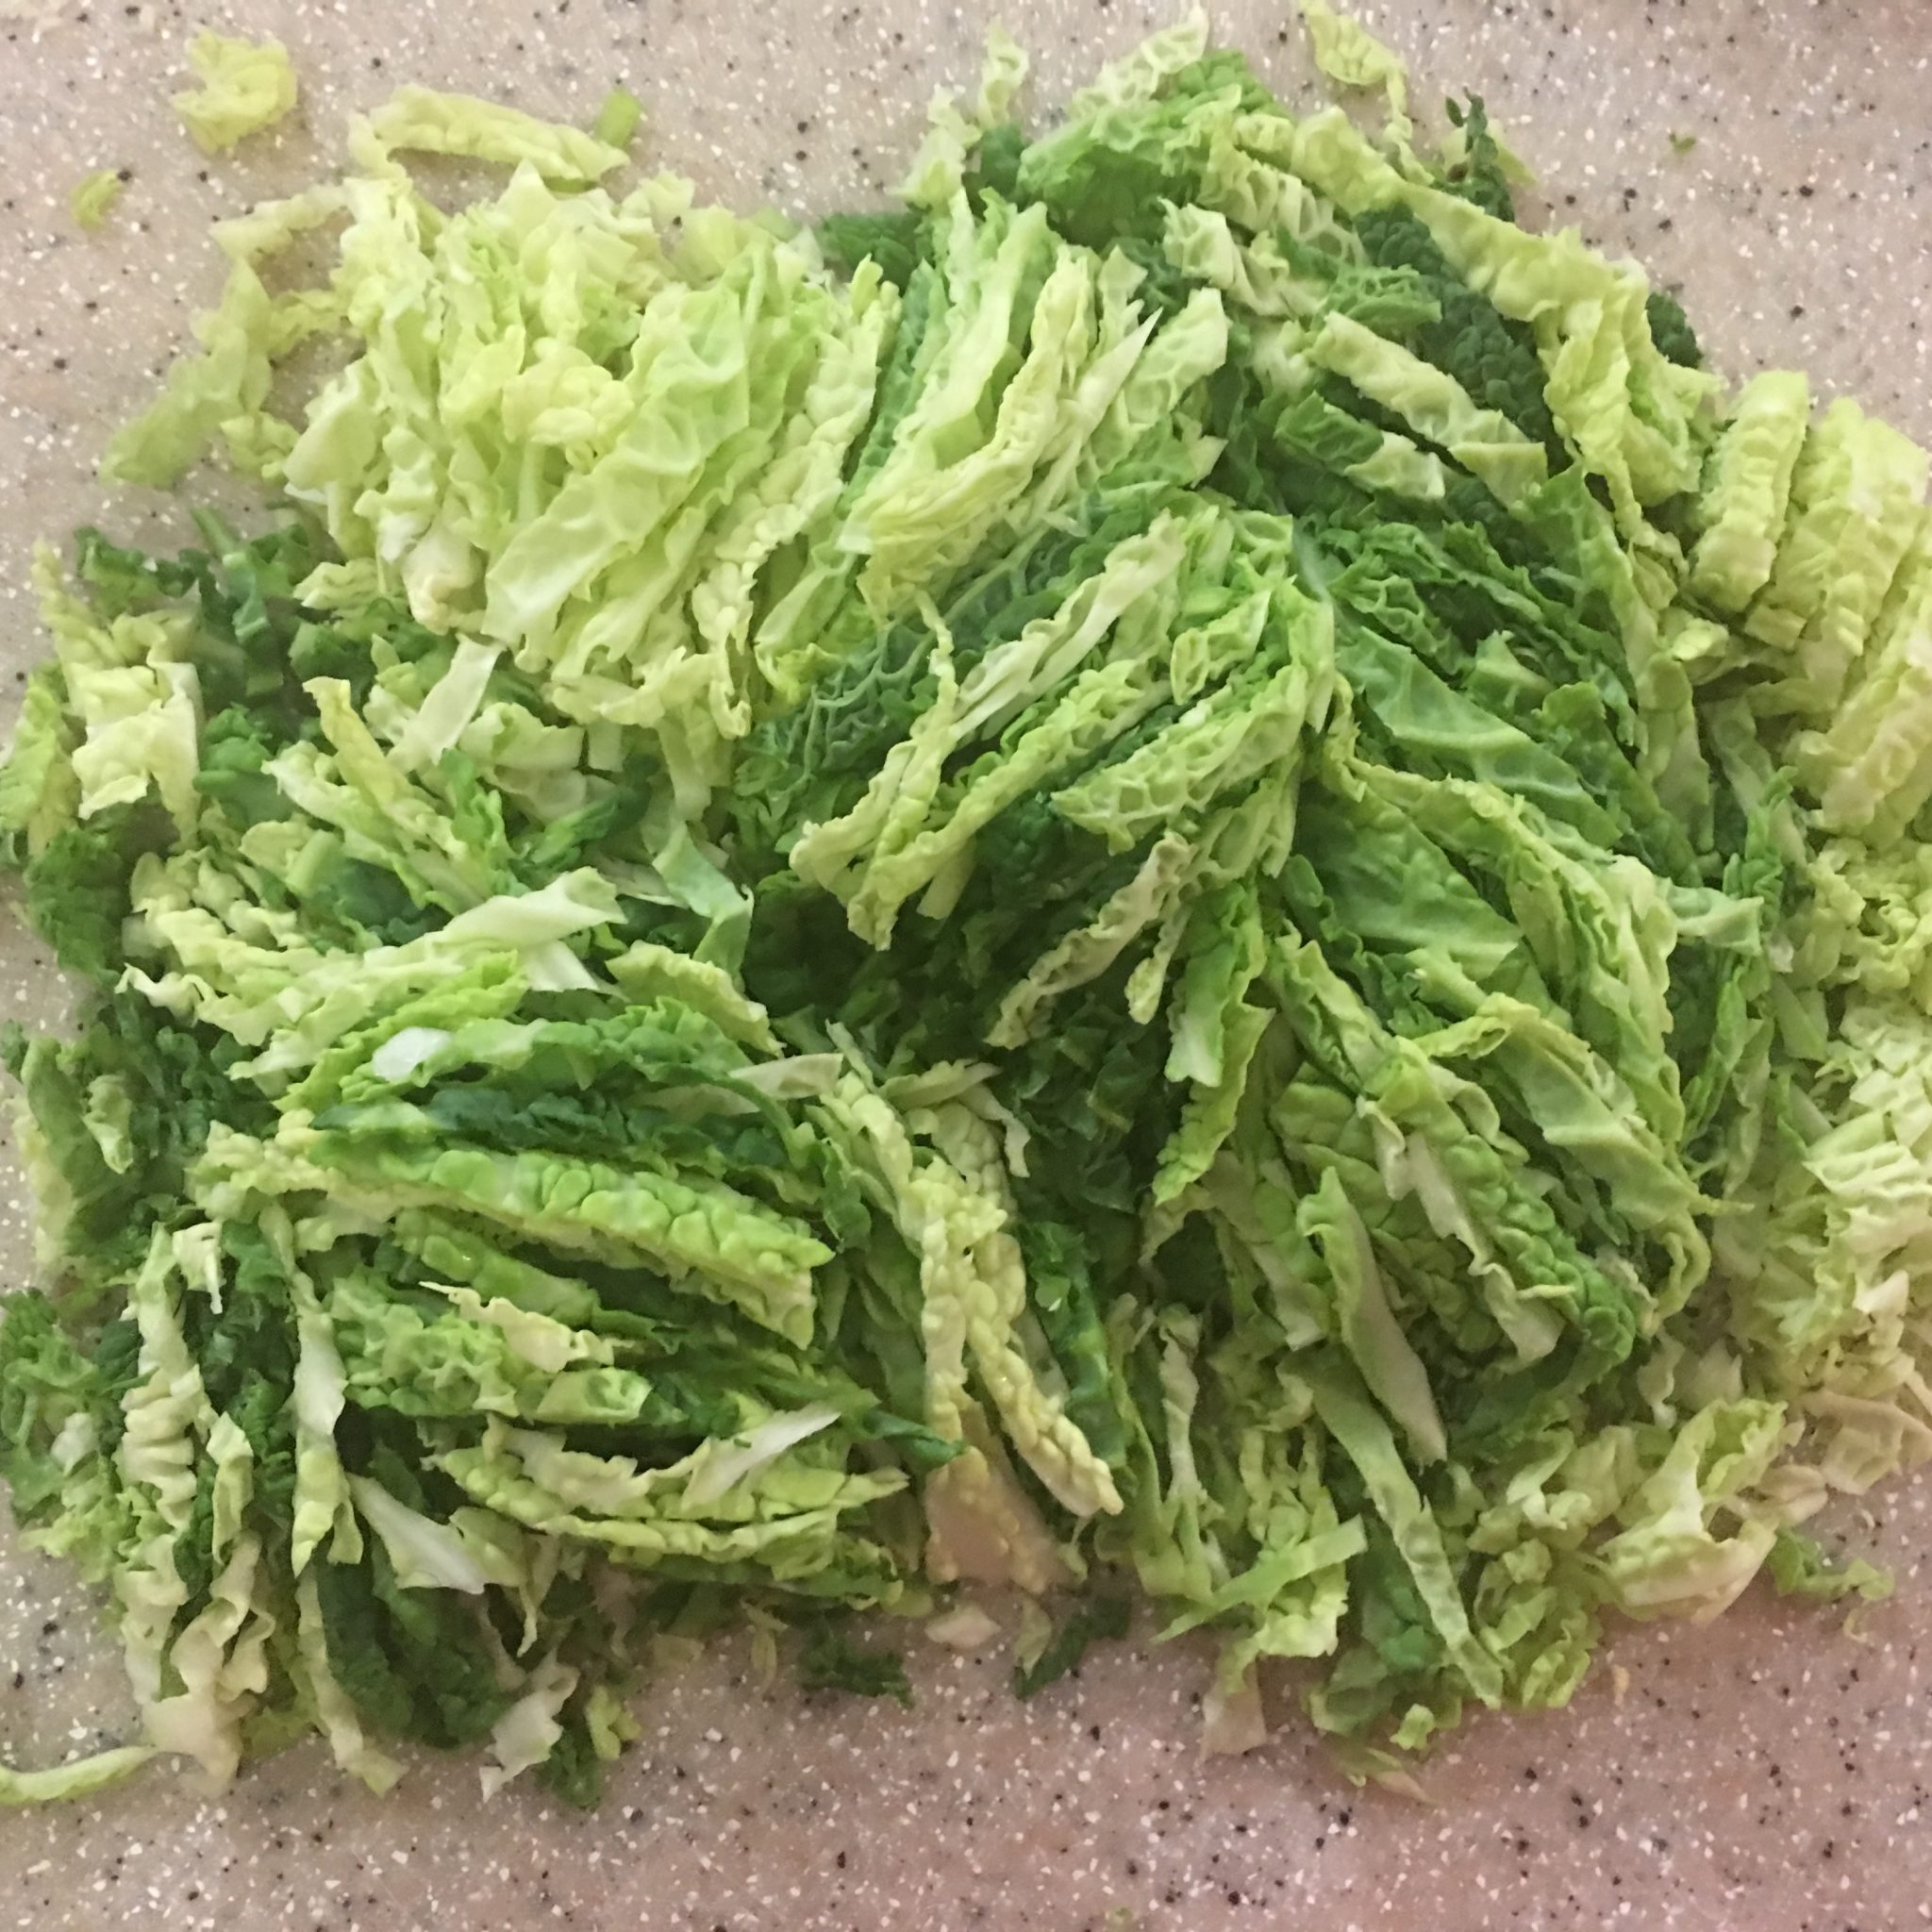 Shredded up strips of fresh green savoy cabbage, with its pebbly-textured leaves in shades from almost yellow-green paleness to deep robust emerald green